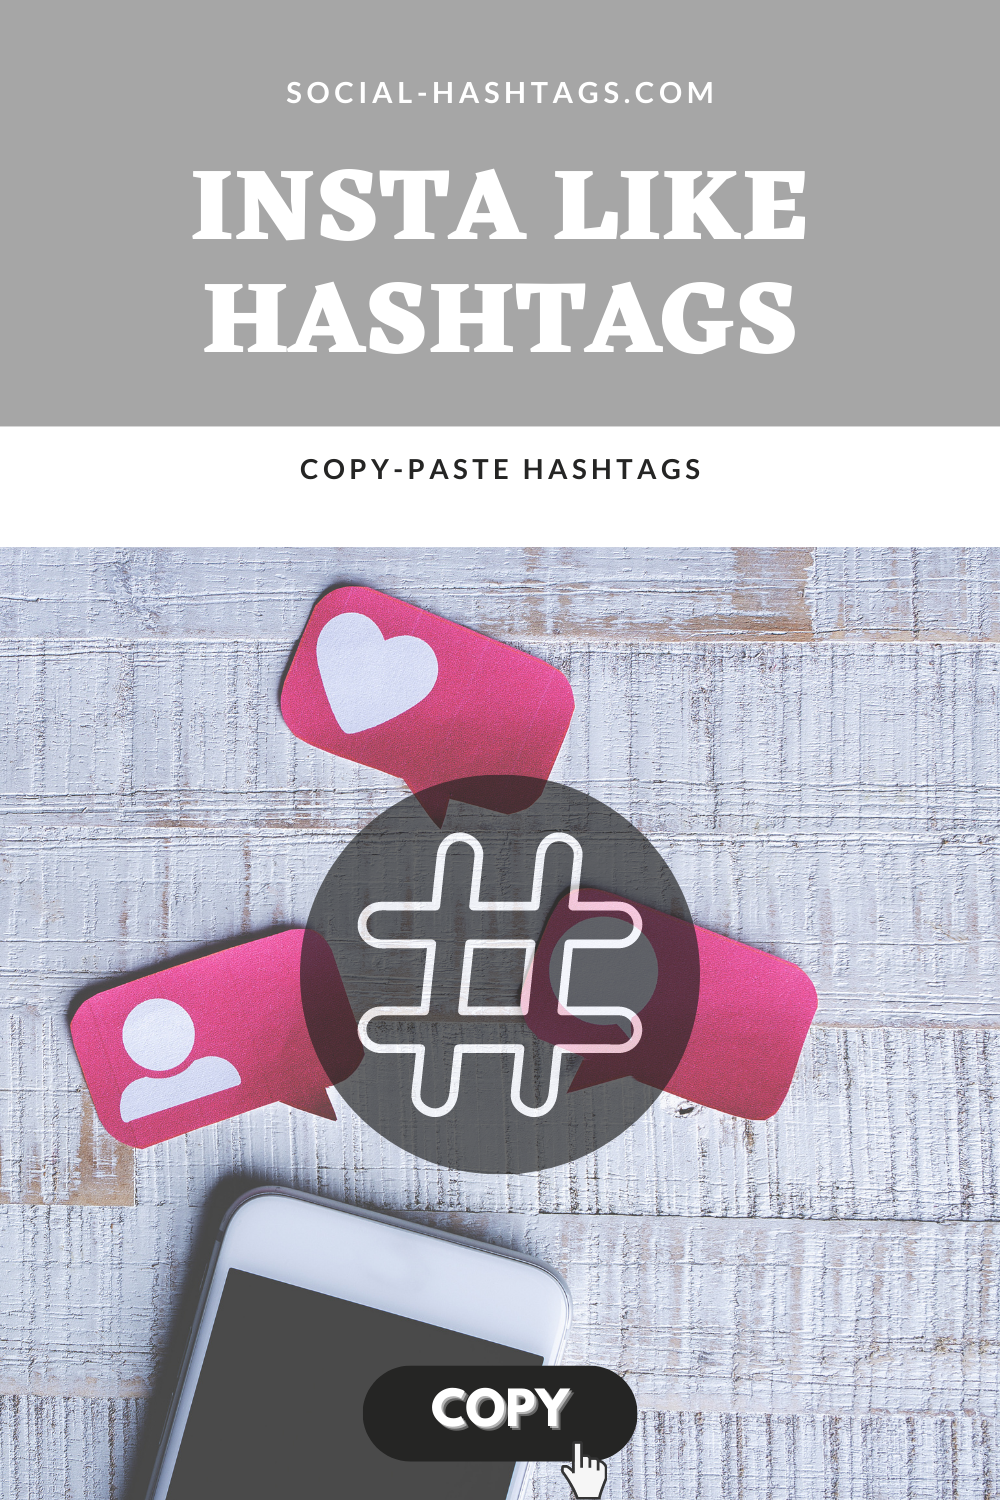 Instagram Hashtags For Insta Like In 2021 Hashtags Instagram Hashtags Instagram Posts